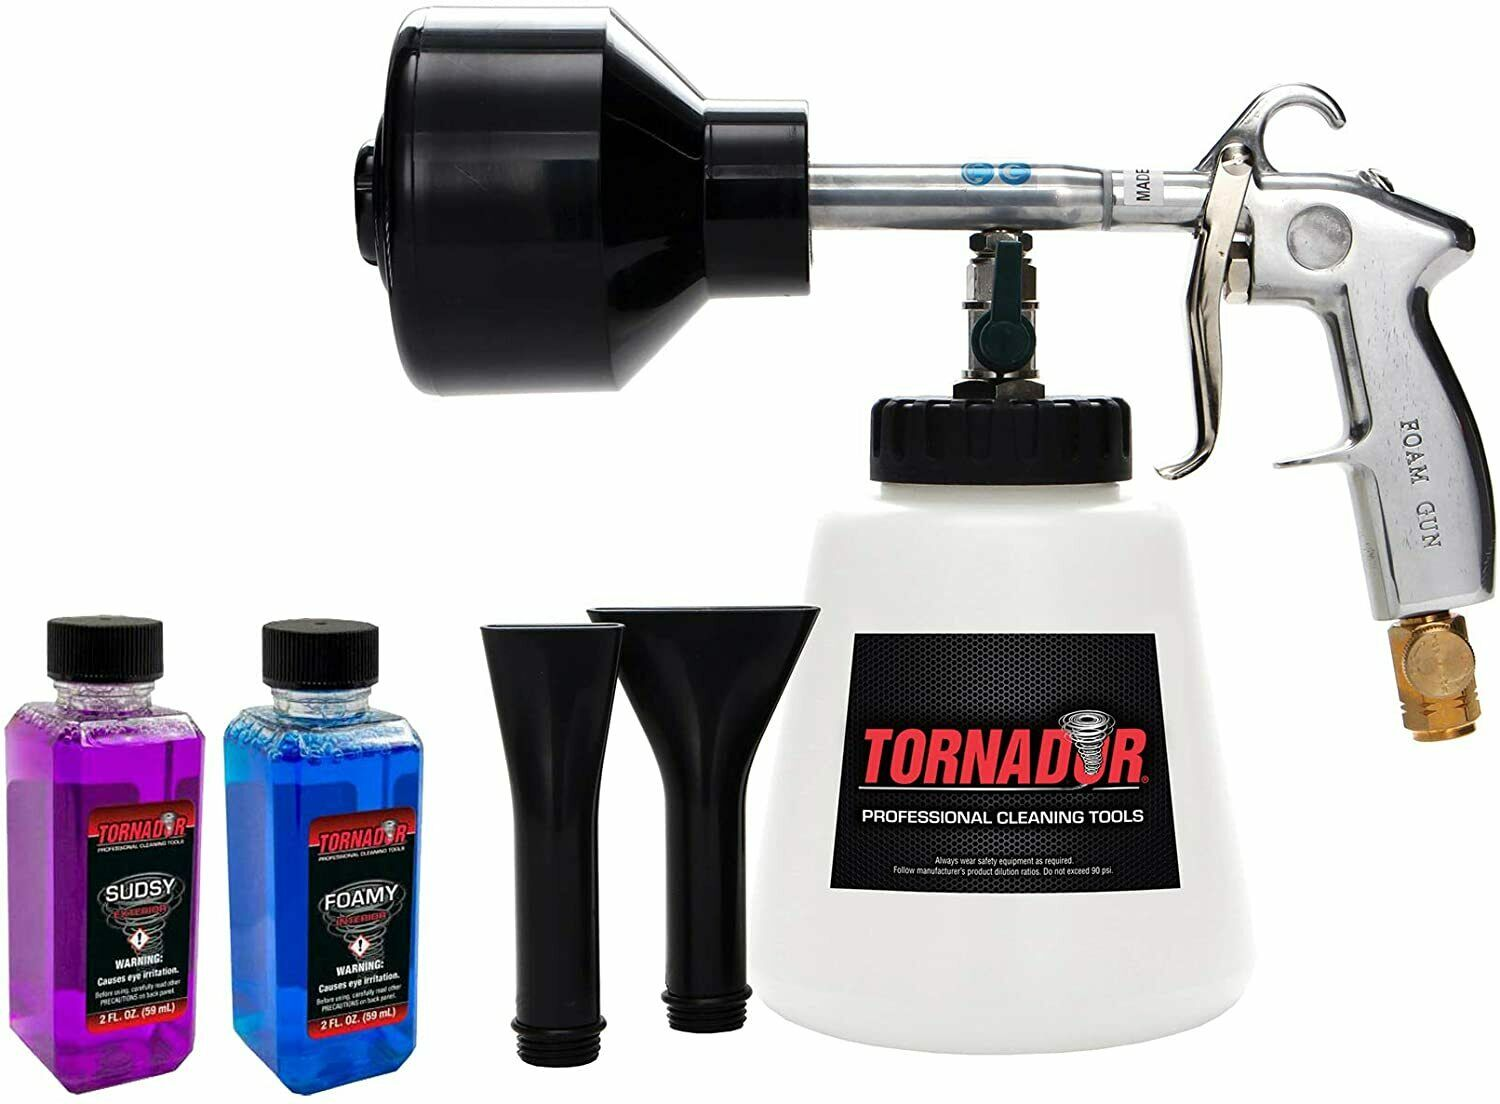 Load image into Gallery viewer, Tornador Z-011 Foam Gun Starter Kit with Foamy Interior Cleaner and Sudsy Exterior Cleaner